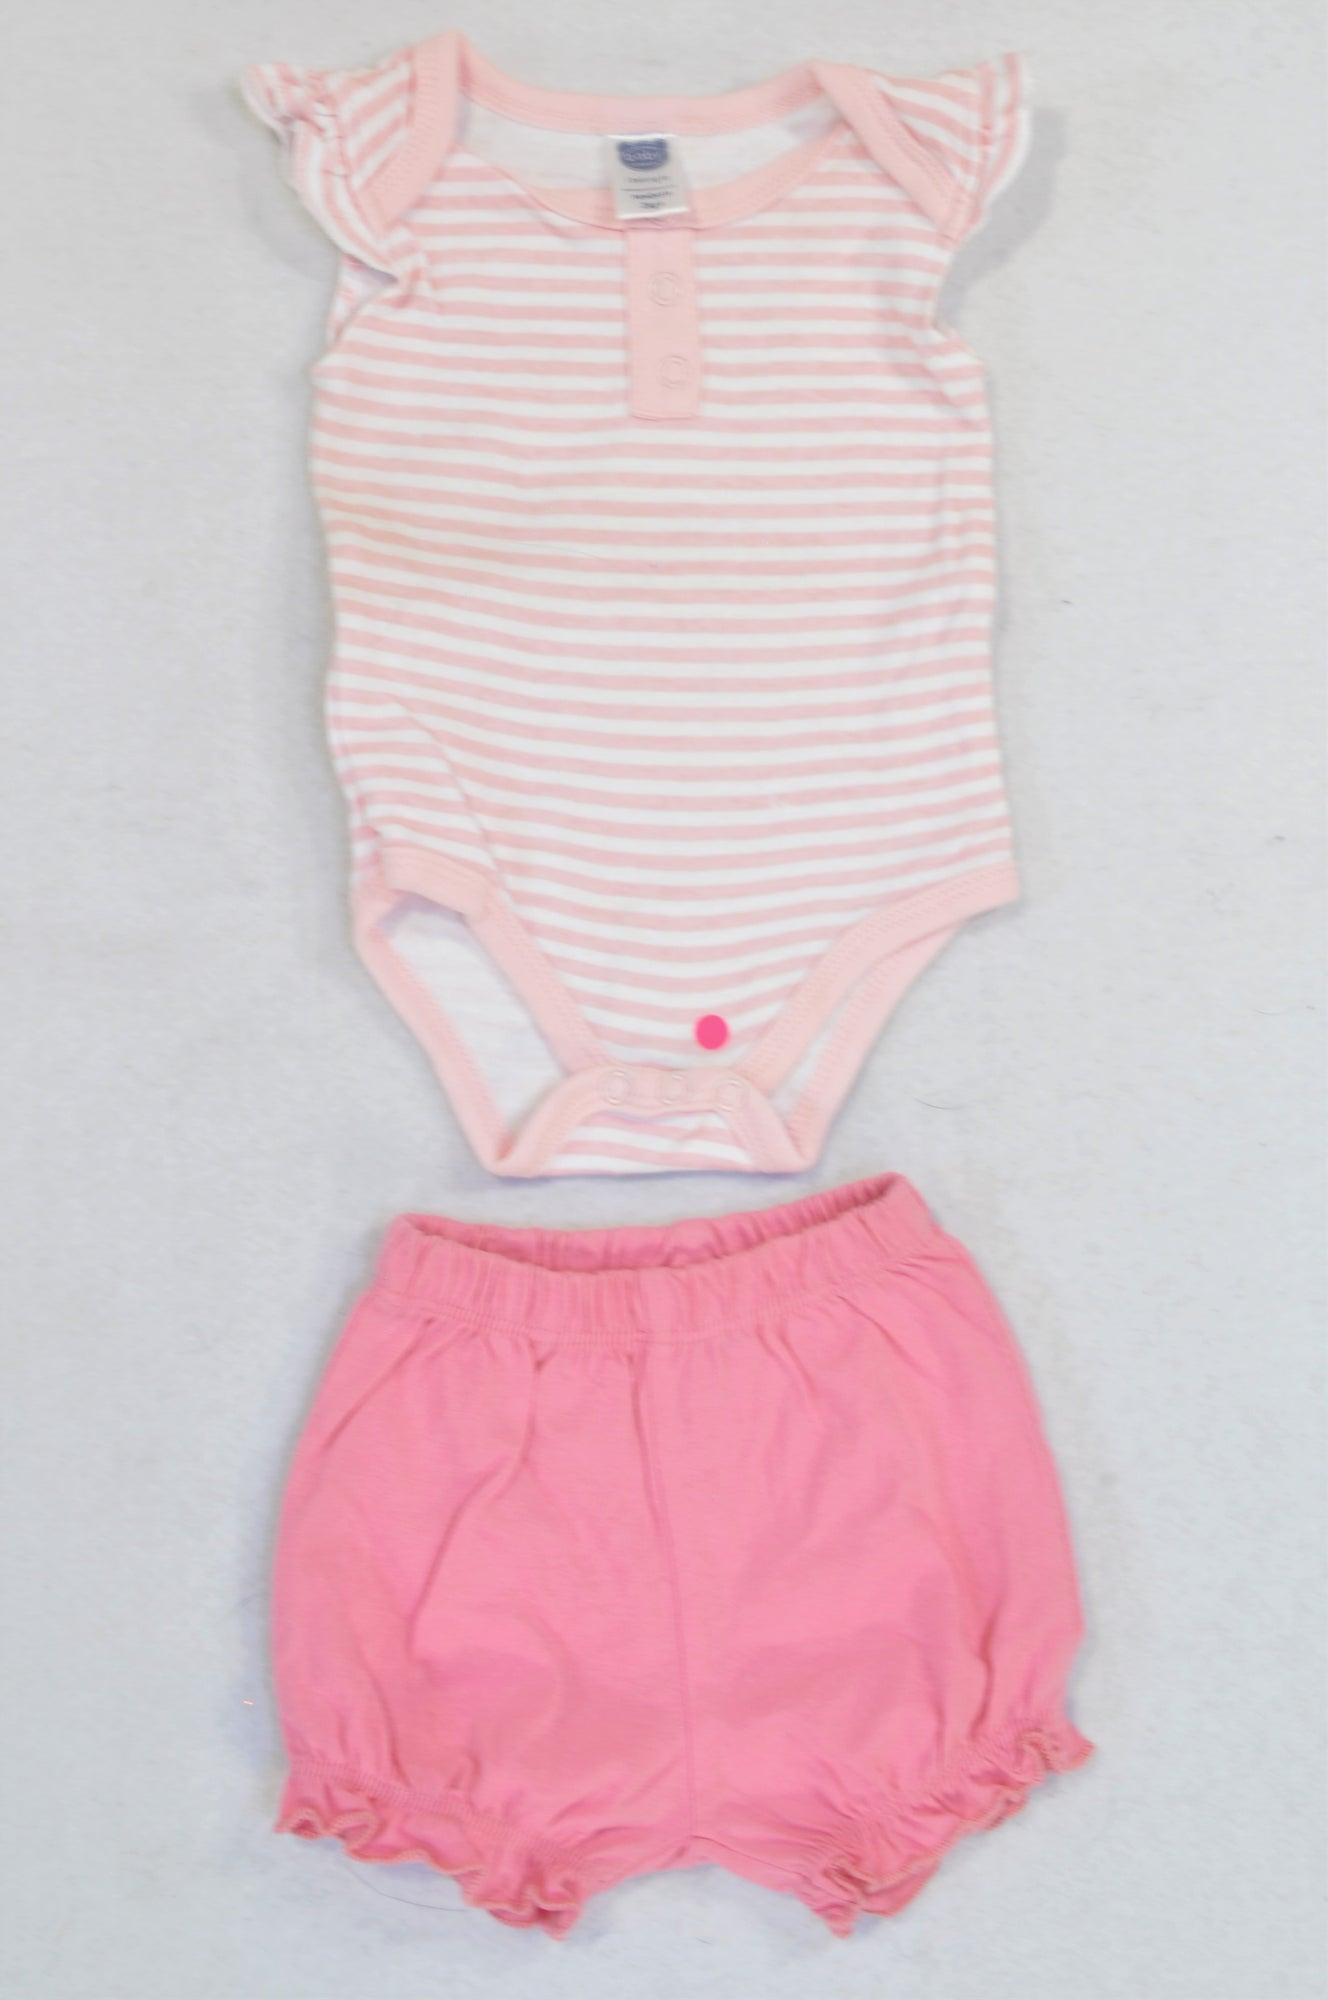 Ackermans Pink & White Striped Ruffle Sleeve Baby Grow & Pink Bubble Shorts Outfit Girls N-B